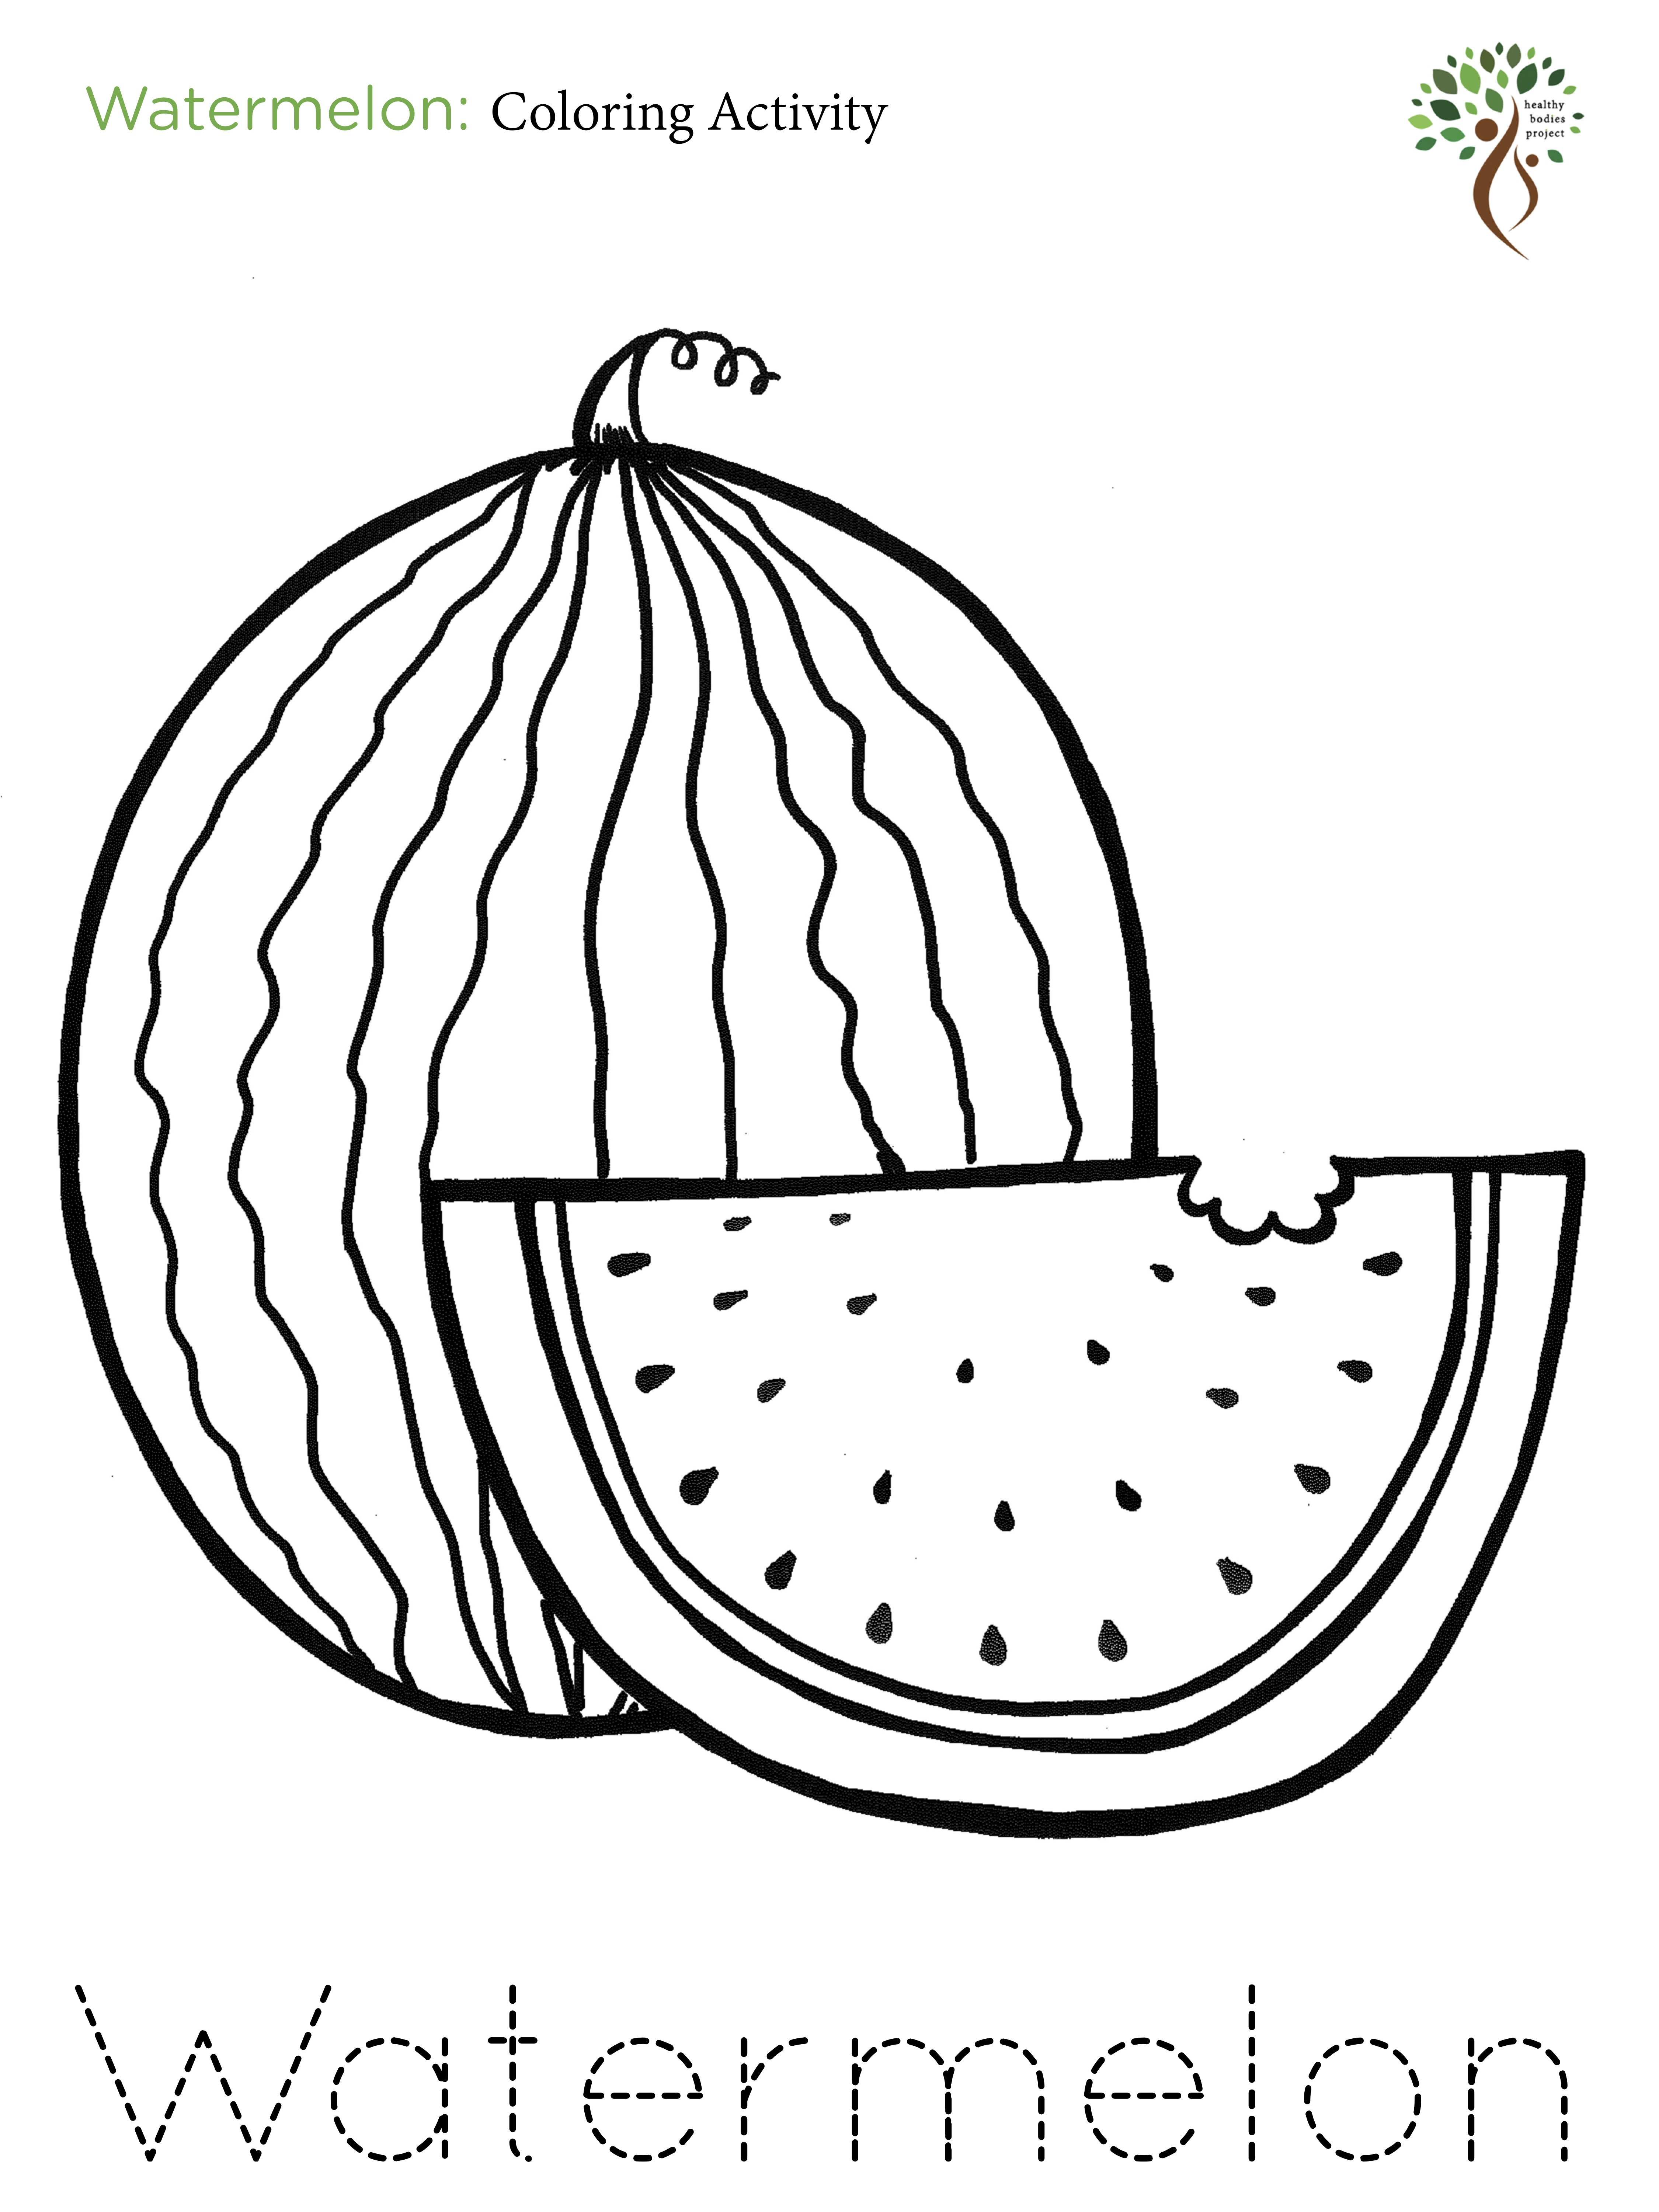 watermelon for coloring a z coloring activities healthy bodies project watermelon for coloring